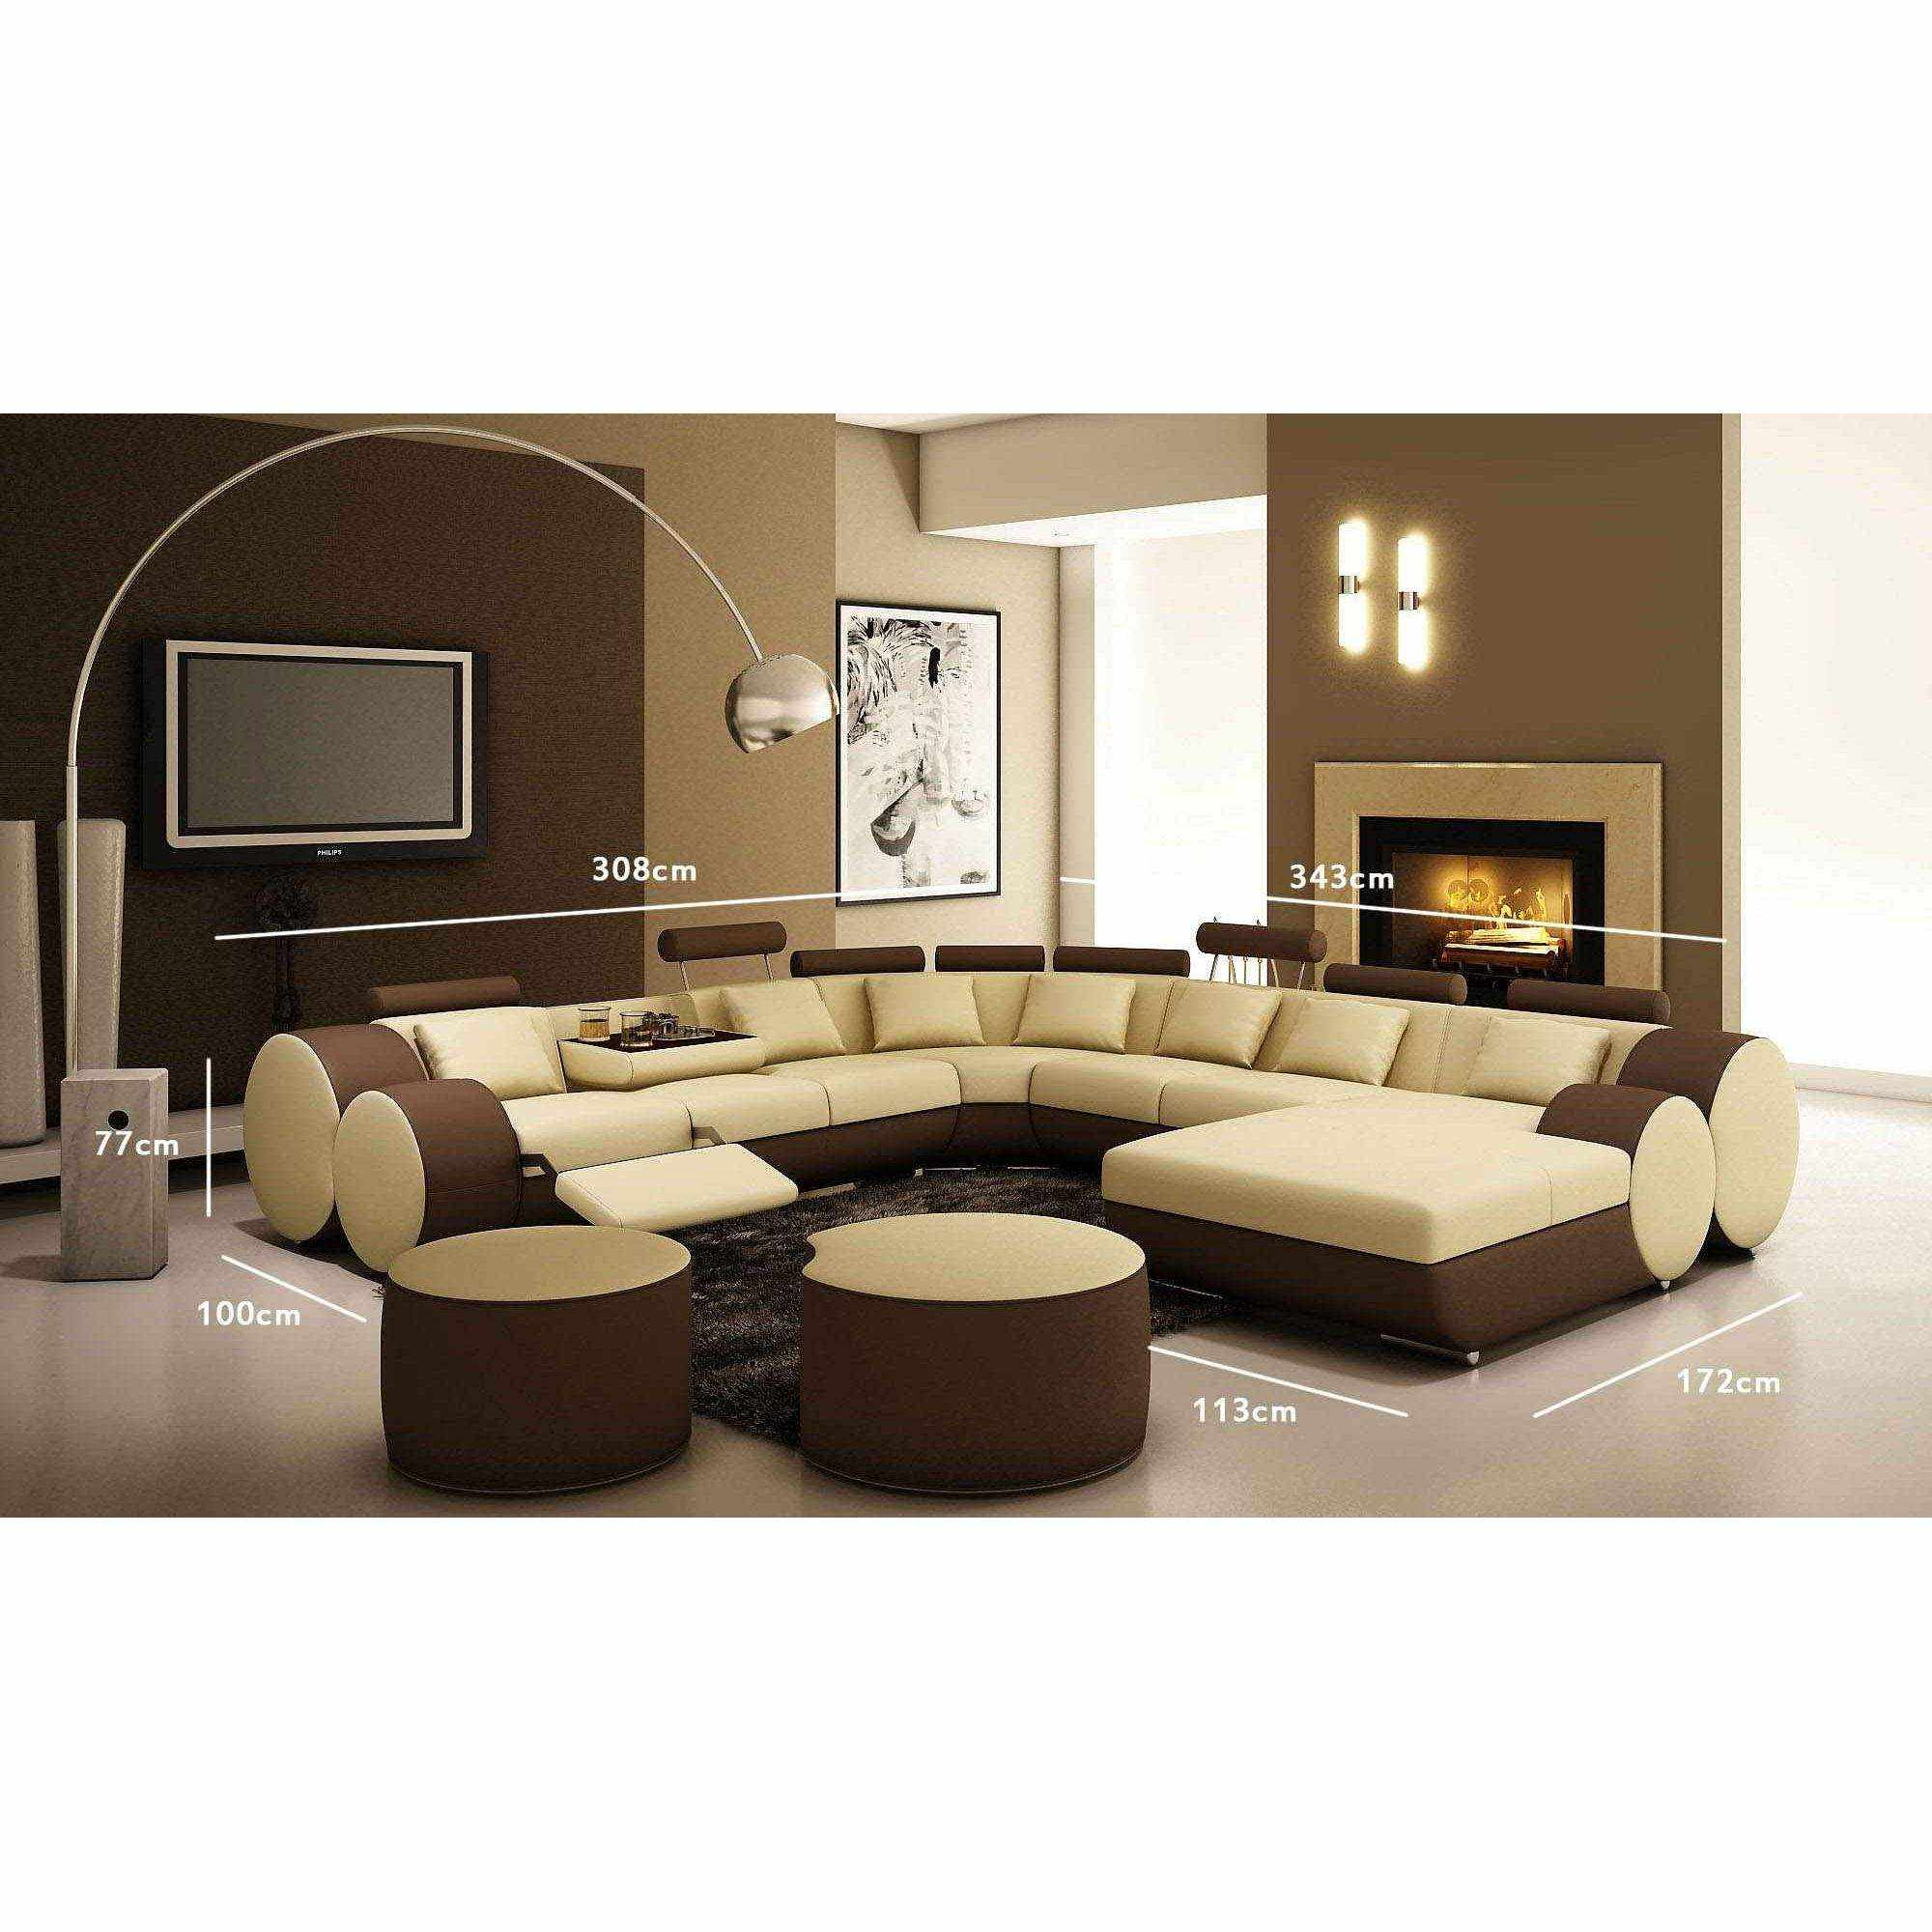 Deco In Paris Canape Panoramique Cuir Beige Et Marron Roma Can Pan Roma Beige Marron